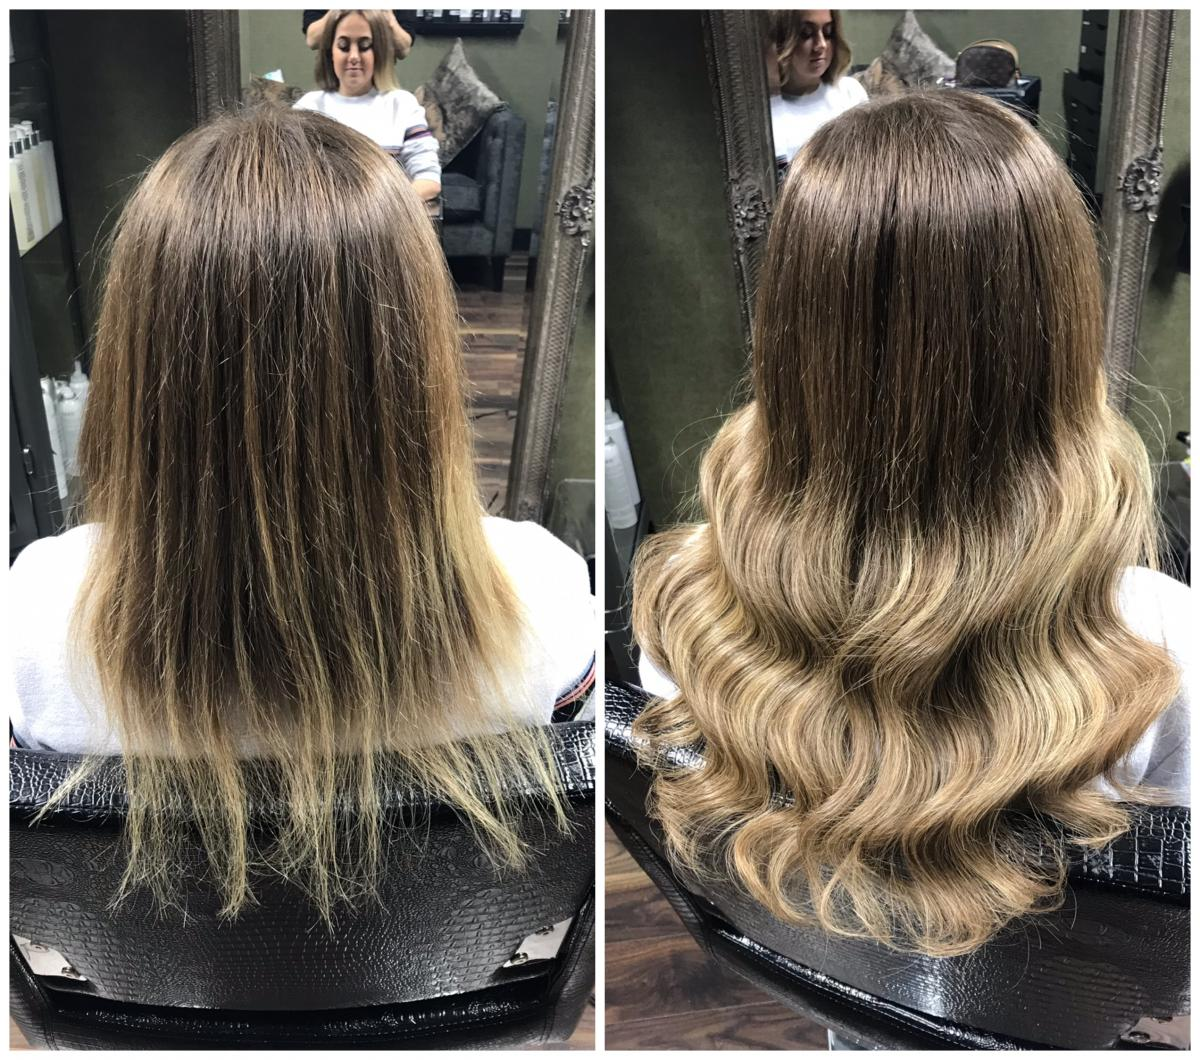 Hair Extensions London Gallery Hair Extensionist London Essex